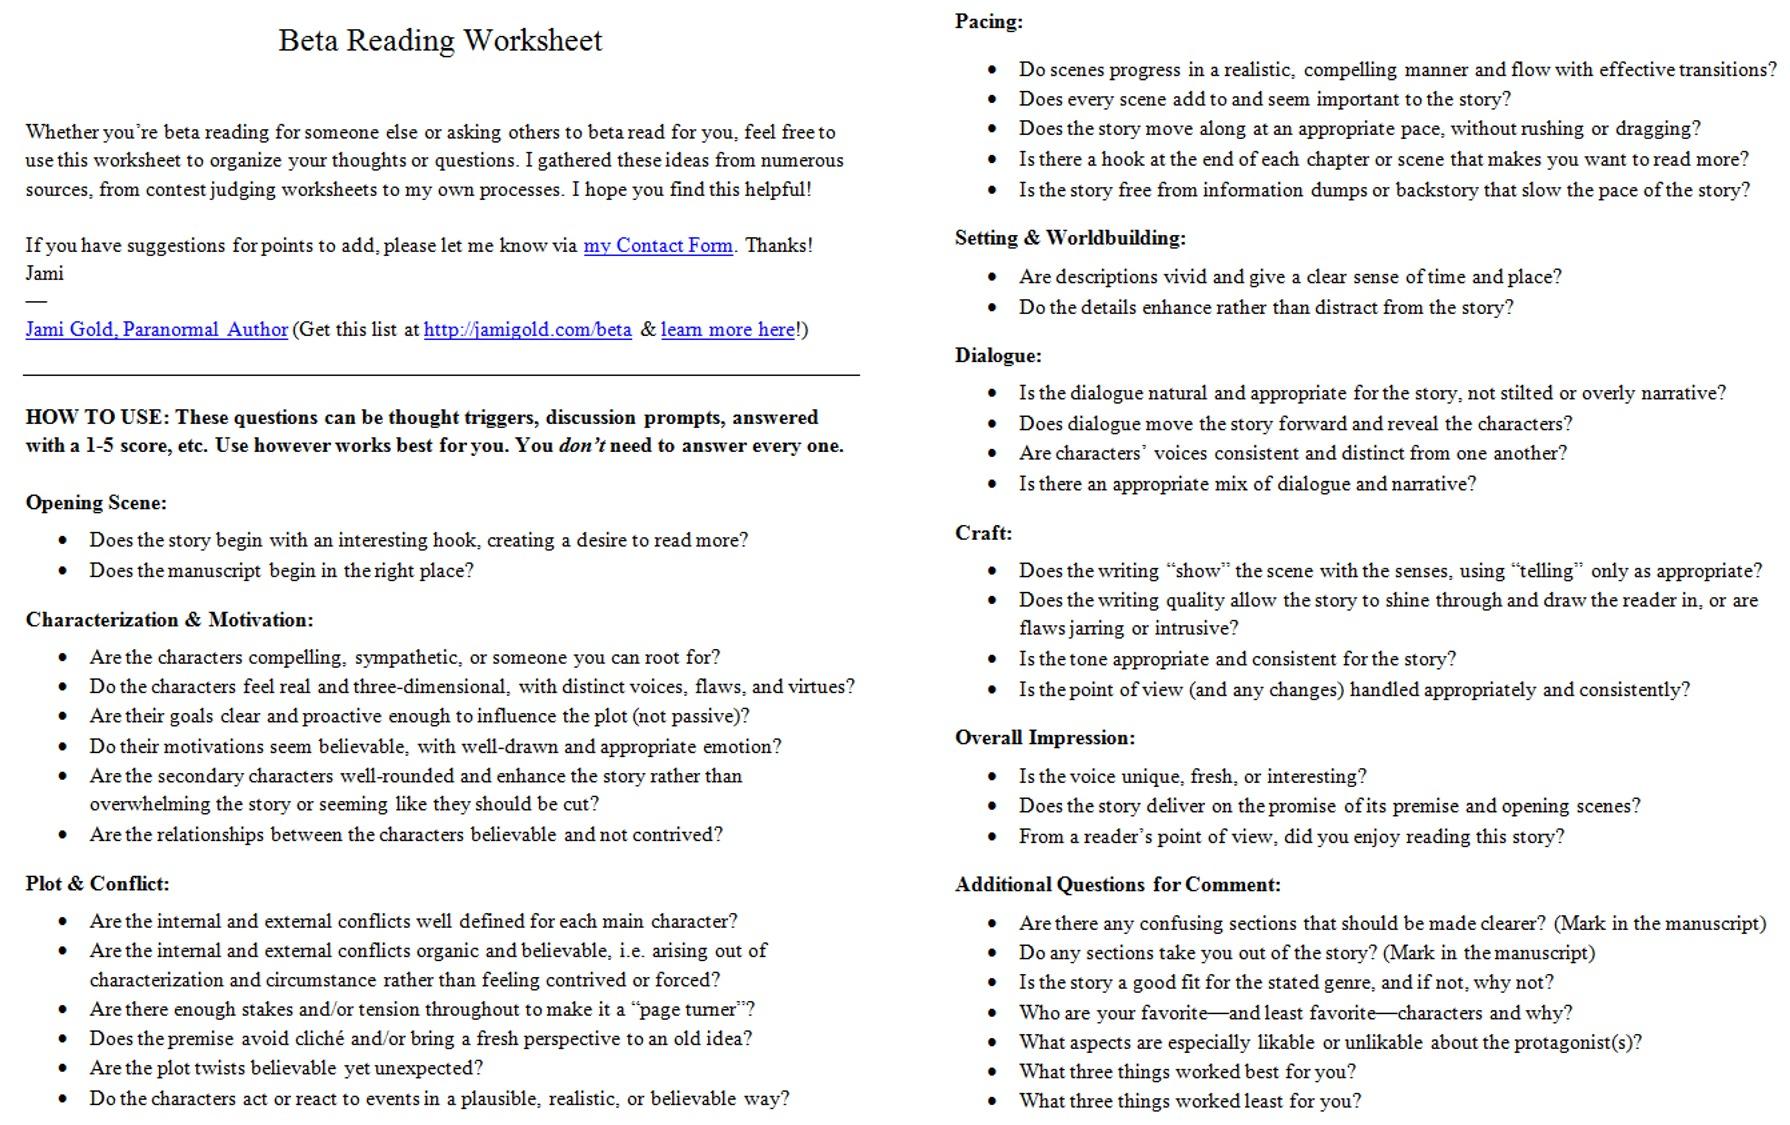 Proatmealus  Nice Worksheets For Writers  Jami Gold Paranormal Author With Licious Screen Shot Of The Twopage Beta Reading Worksheet With Astonishing The Yellow Wallpaper Worksheet Also Two Step Linear Equations Worksheet In Addition Dependent Worksheet And Mapping Worksheets As Well As Writing Paragraphs Worksheet Additionally Consumers And Producers Worksheets From Jamigoldcom With Proatmealus  Licious Worksheets For Writers  Jami Gold Paranormal Author With Astonishing Screen Shot Of The Twopage Beta Reading Worksheet And Nice The Yellow Wallpaper Worksheet Also Two Step Linear Equations Worksheet In Addition Dependent Worksheet From Jamigoldcom